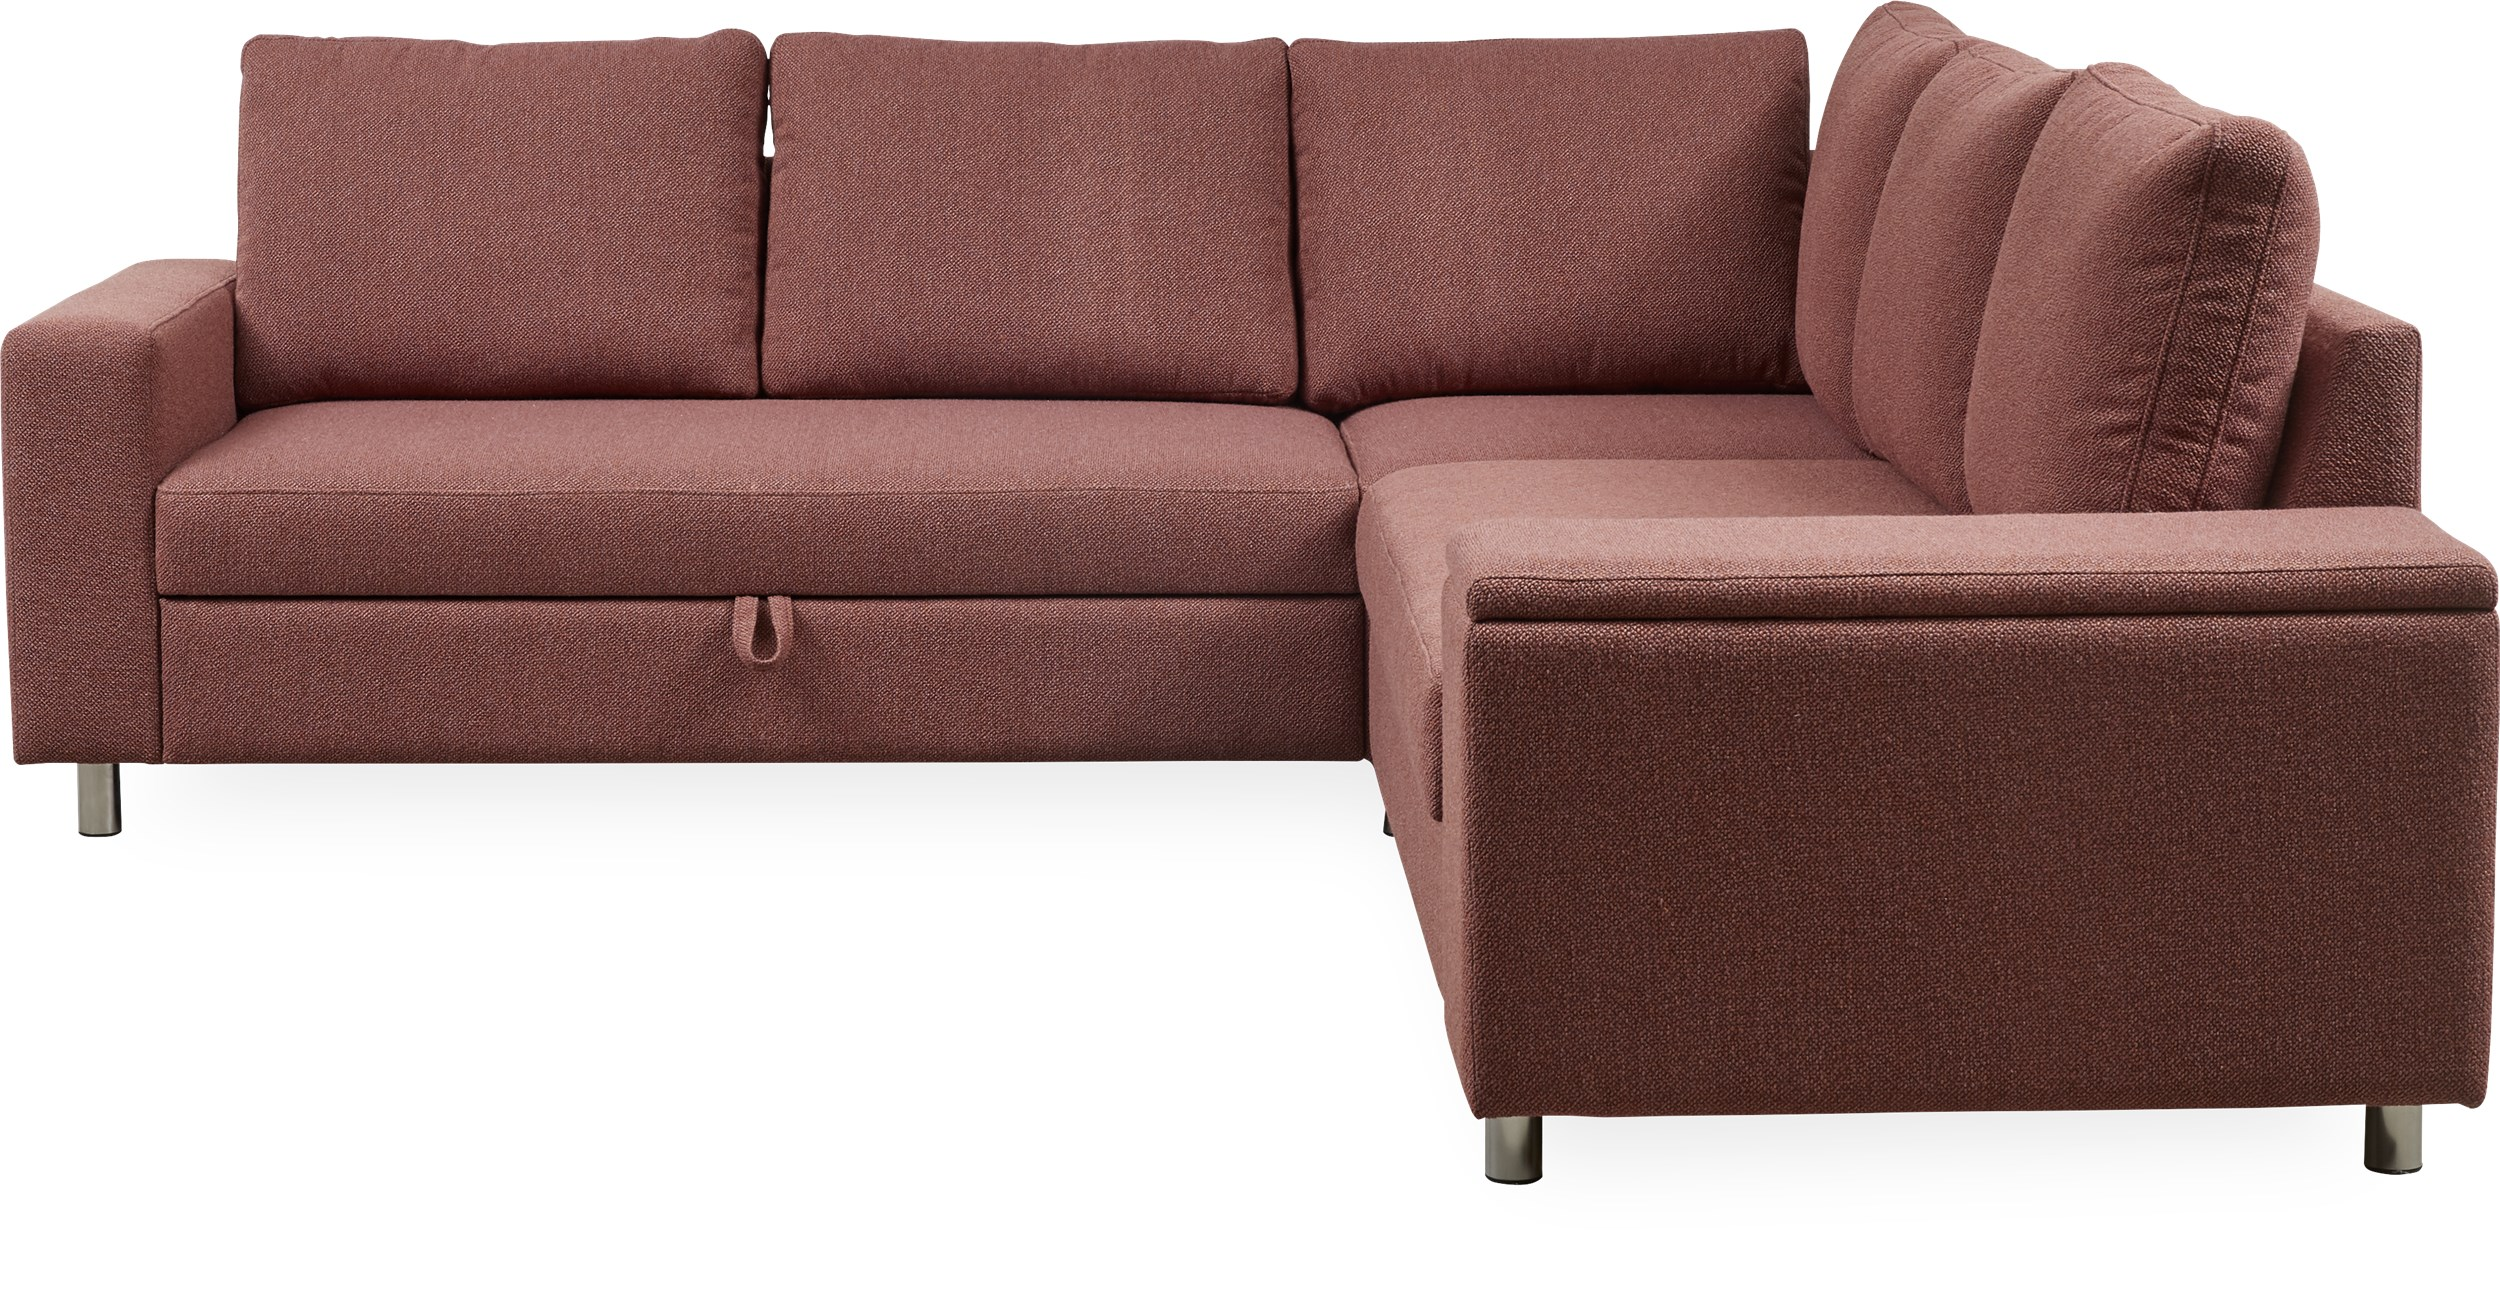 Devon Flex 550 Sovesofa - Tamini 420 Earth red stof, Armlæn 3+1 og S: Pocket R: Dun/fiberkugler